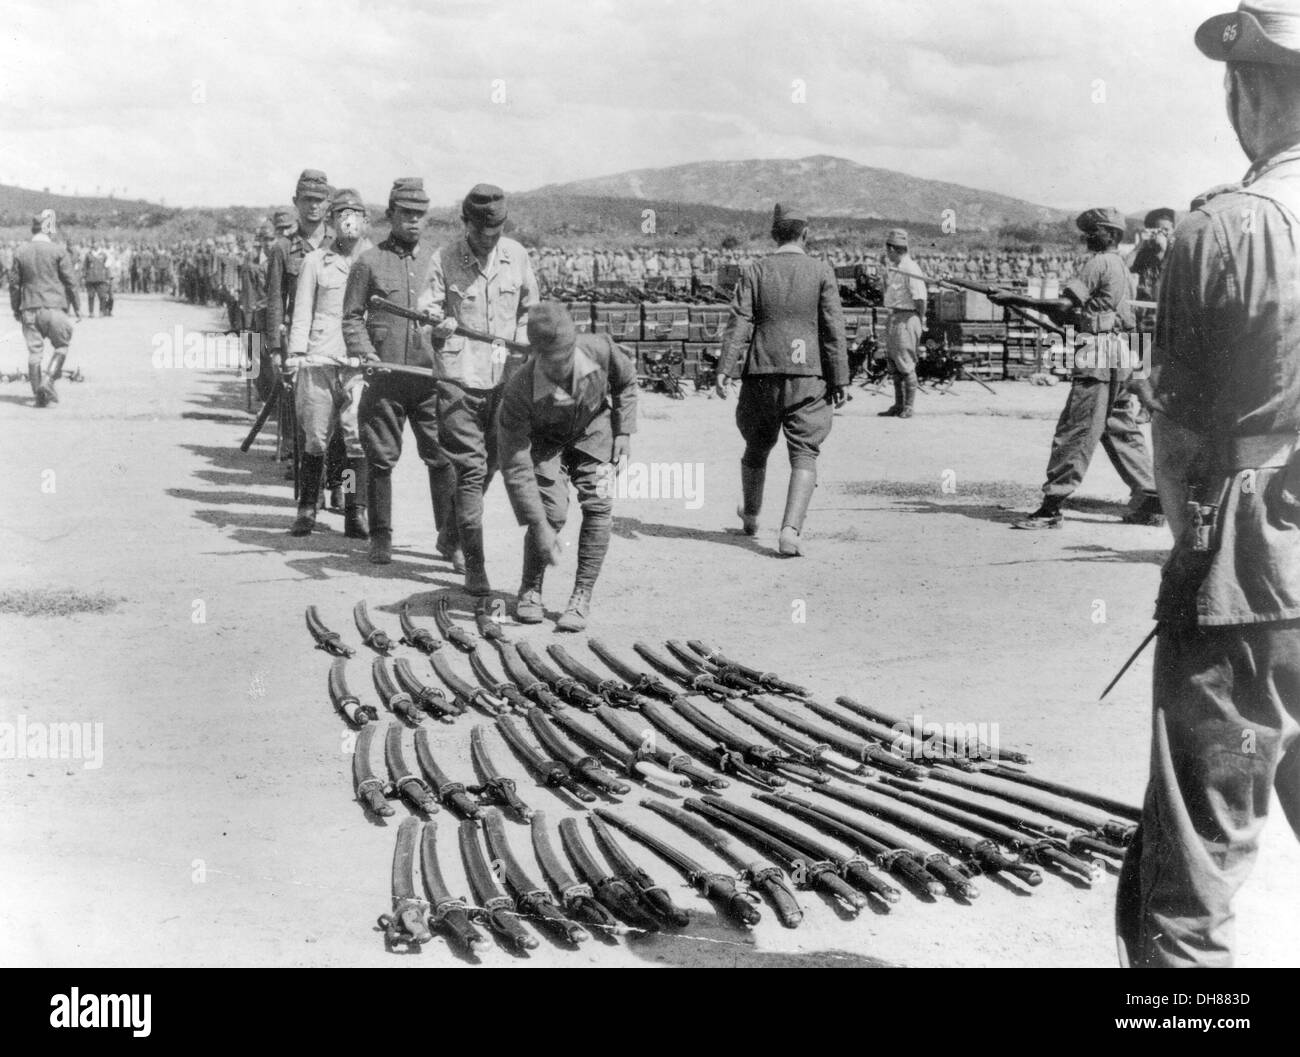 JAPANESE OFFICERS SURRENDER THEIR SWORDS TO BRITISH SOLDIERS AT THE END OF WW2 - Stock Image